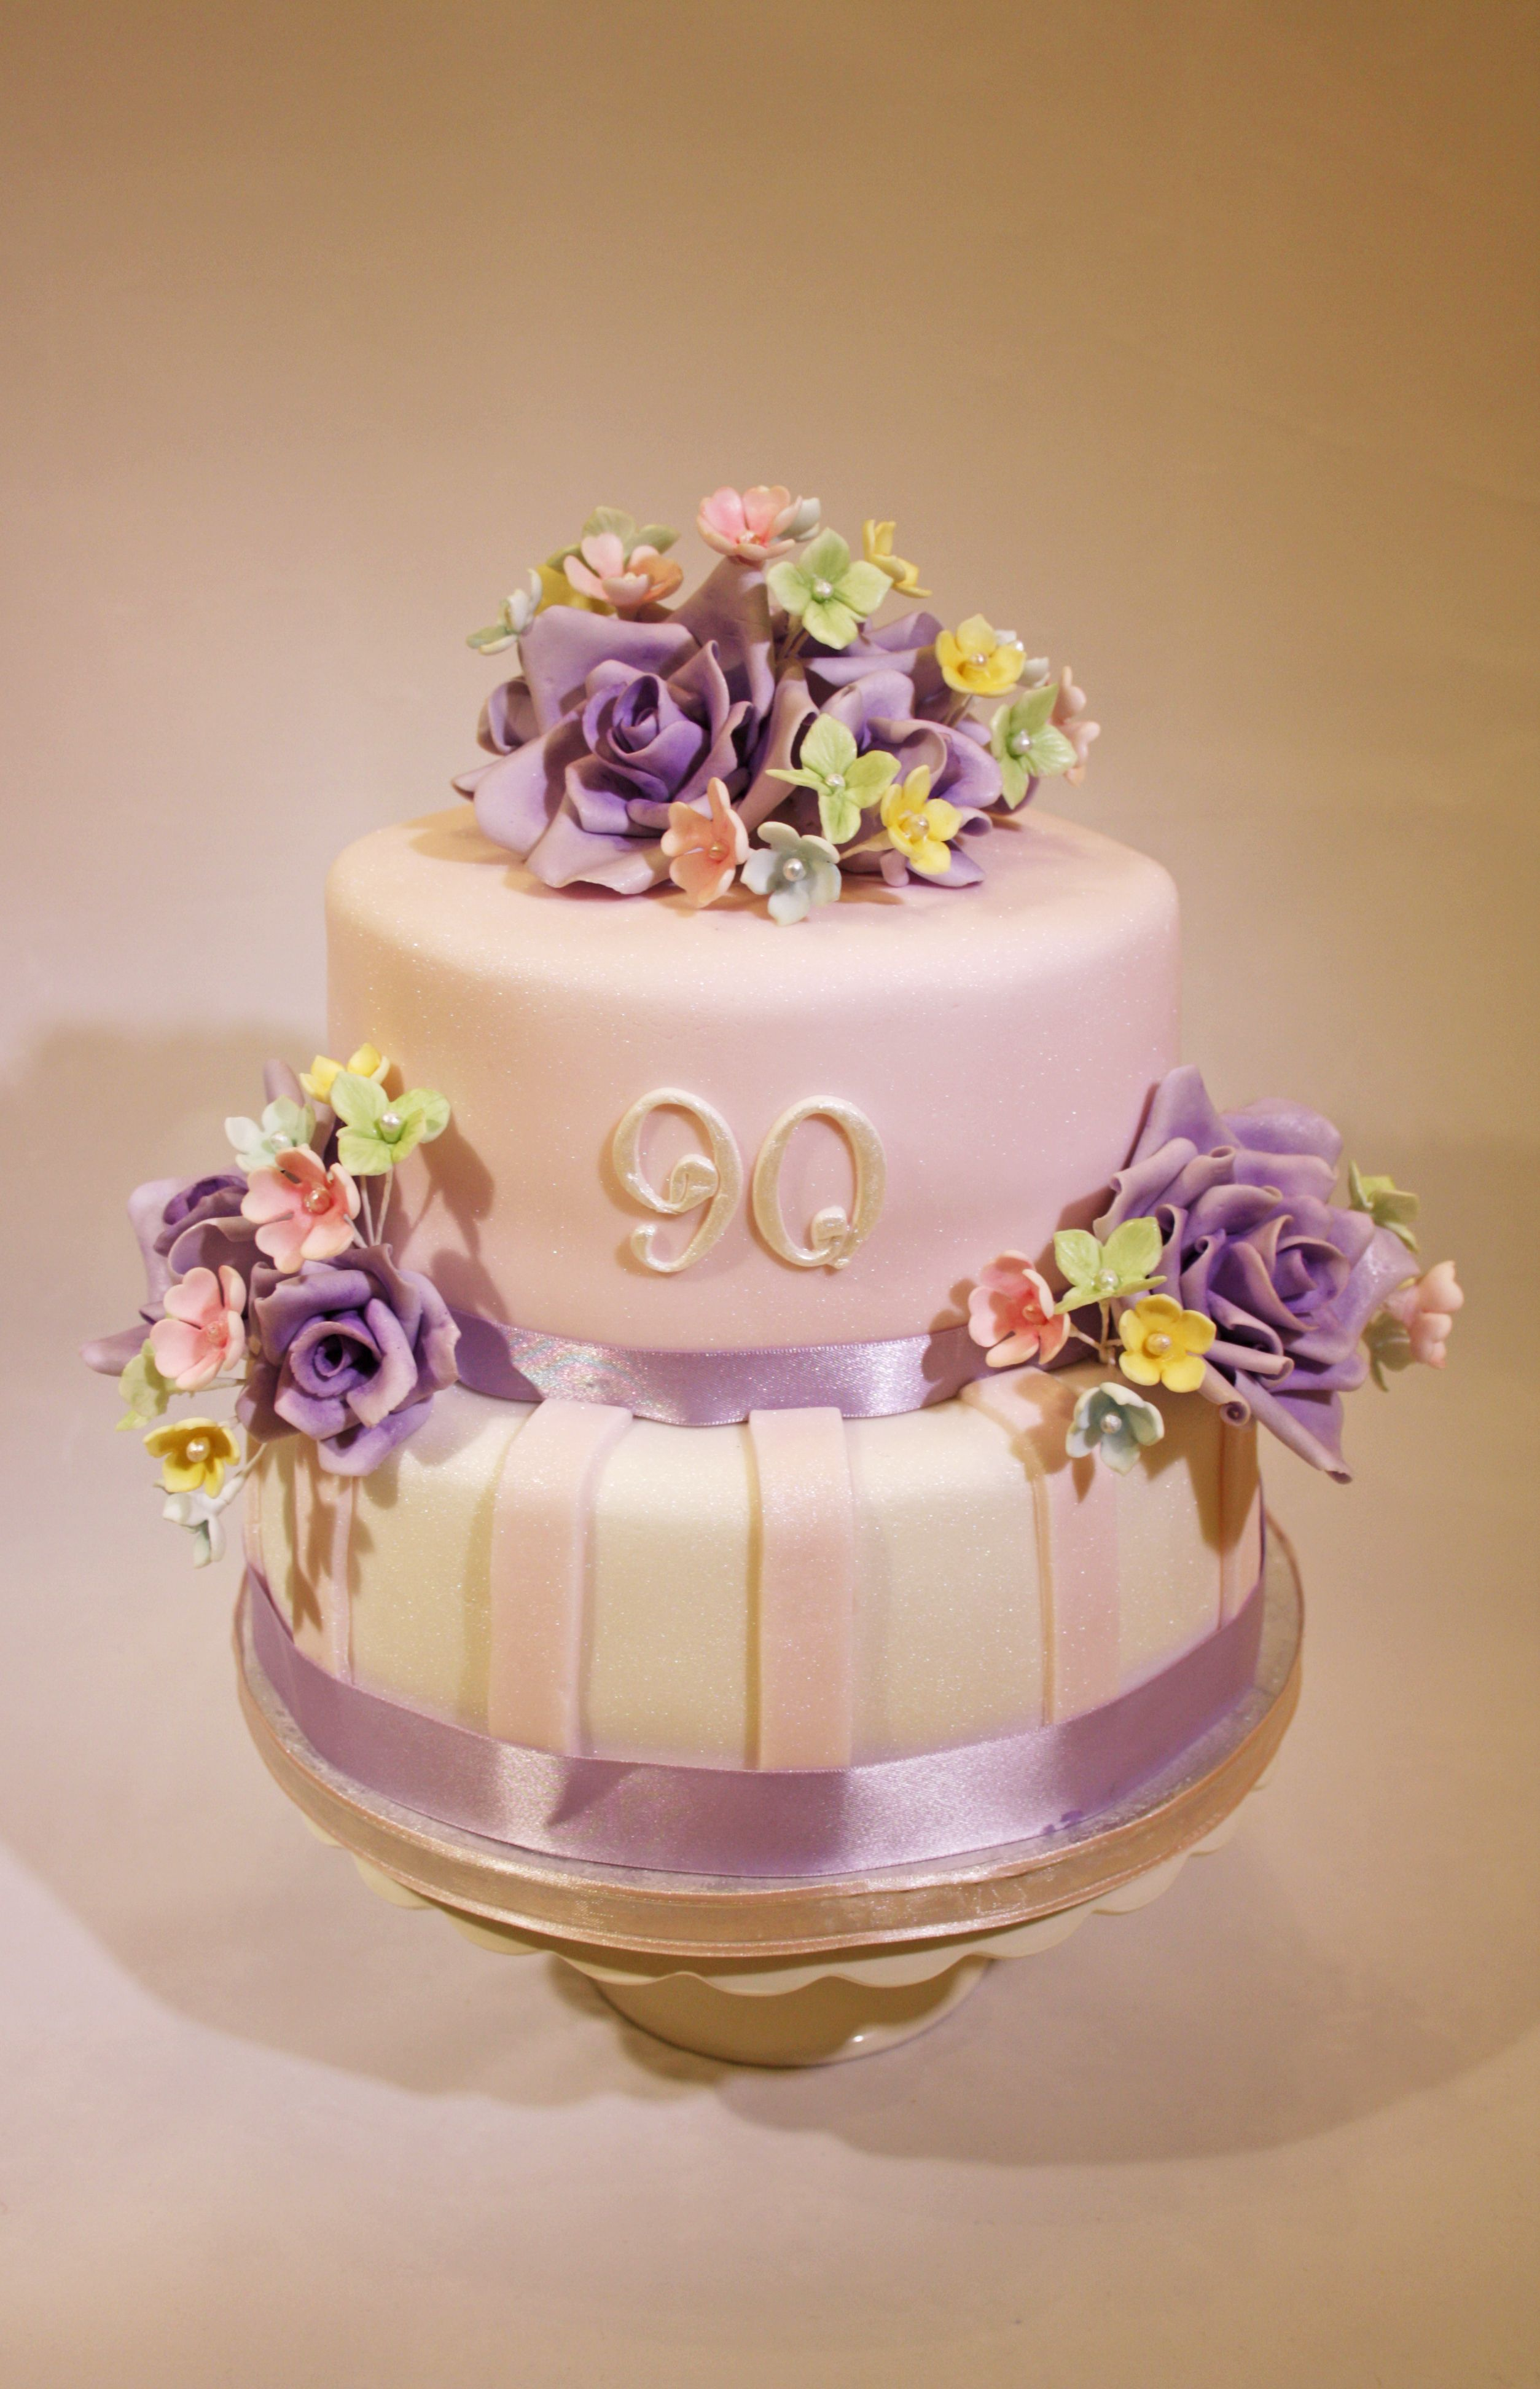 The Flowers Are Done Well Not Necessarily Cake Roses And